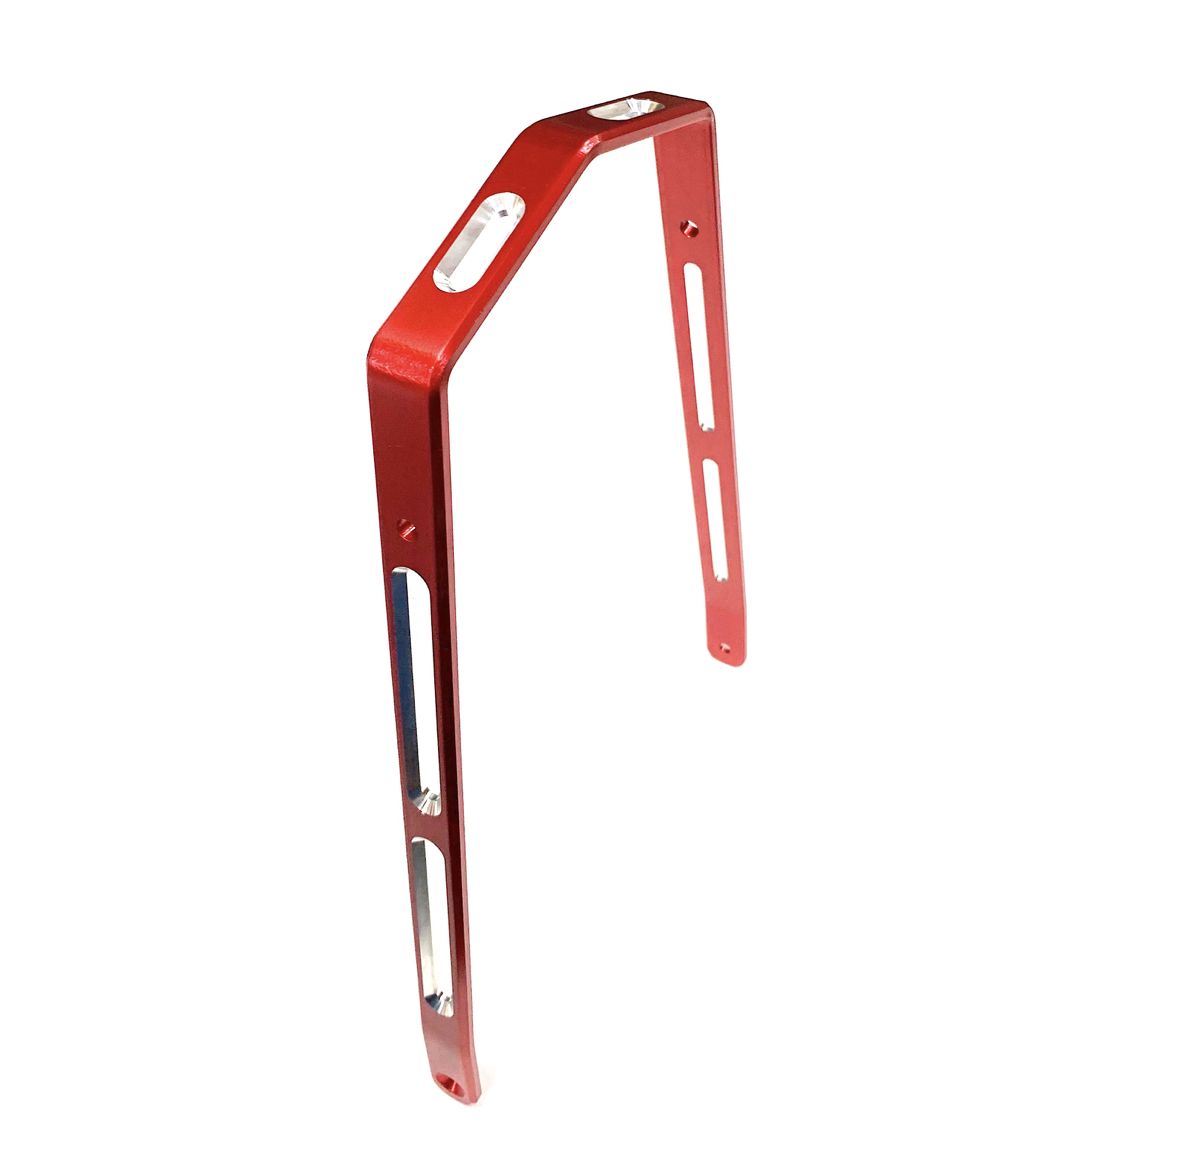 JHI PUSH BAR - RED